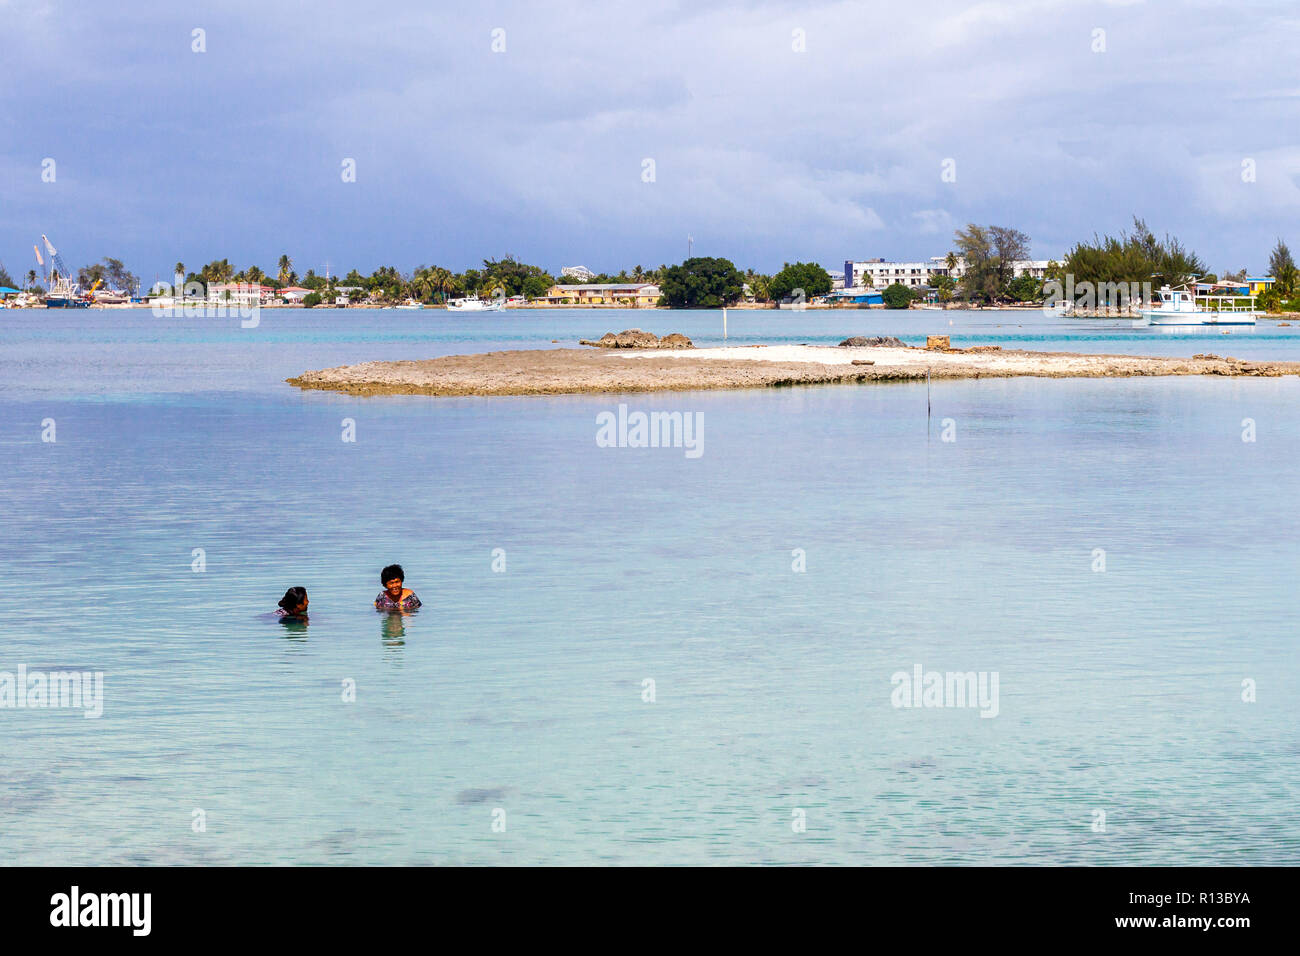 Majuro atoll, Marshall islands - Jan 4 2012: Two middle aged local Micronesian women in closing enjoying swimming in rocky blue turquoise lagoon. - Stock Image